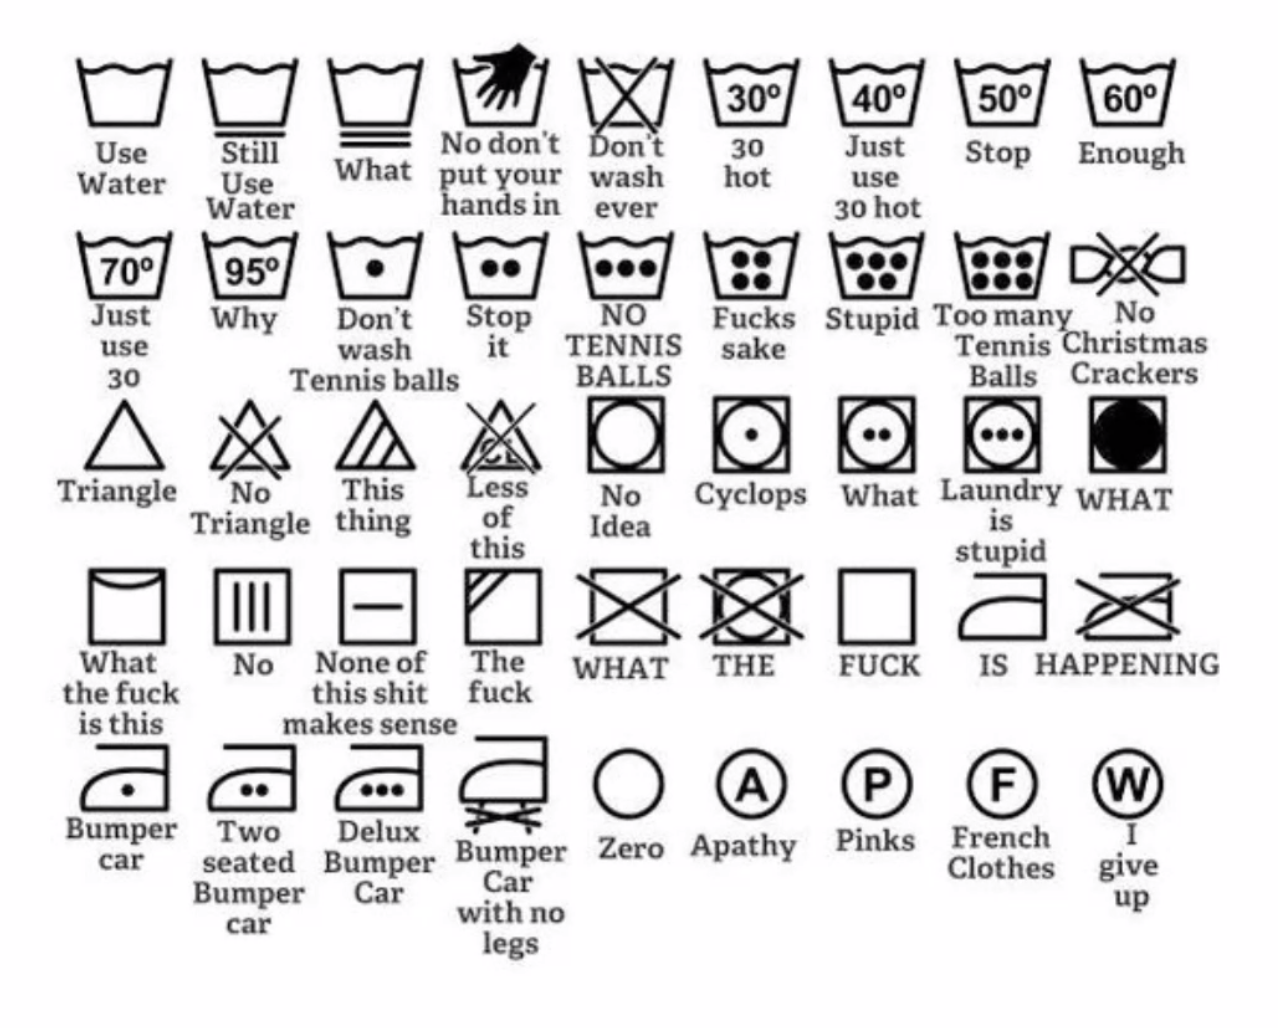 A quick guide to what those laundry icons actually mean